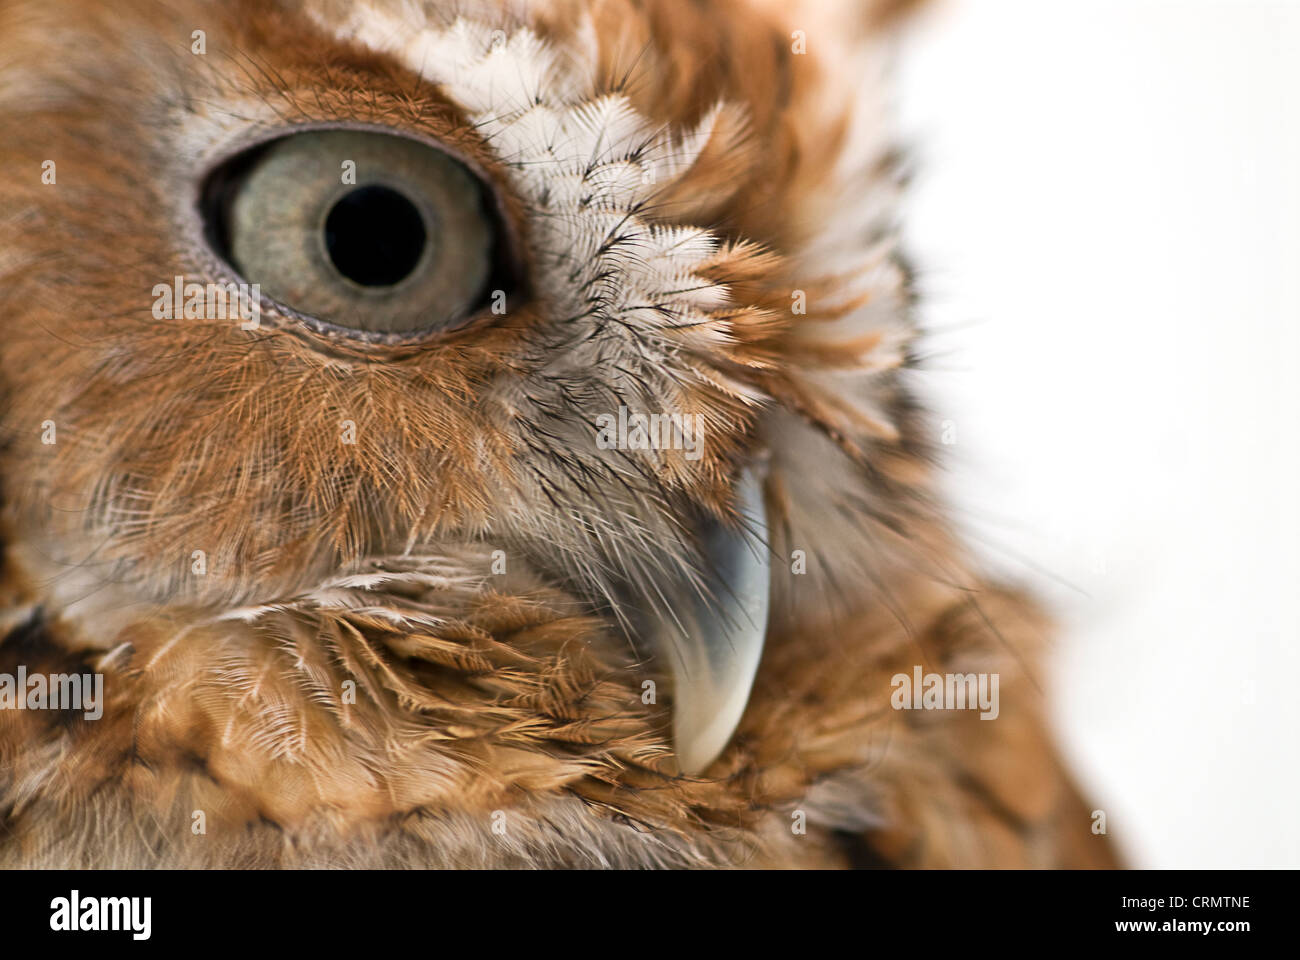 Injured barn owl from nature sanctuary photographed in studio. - Stock Image